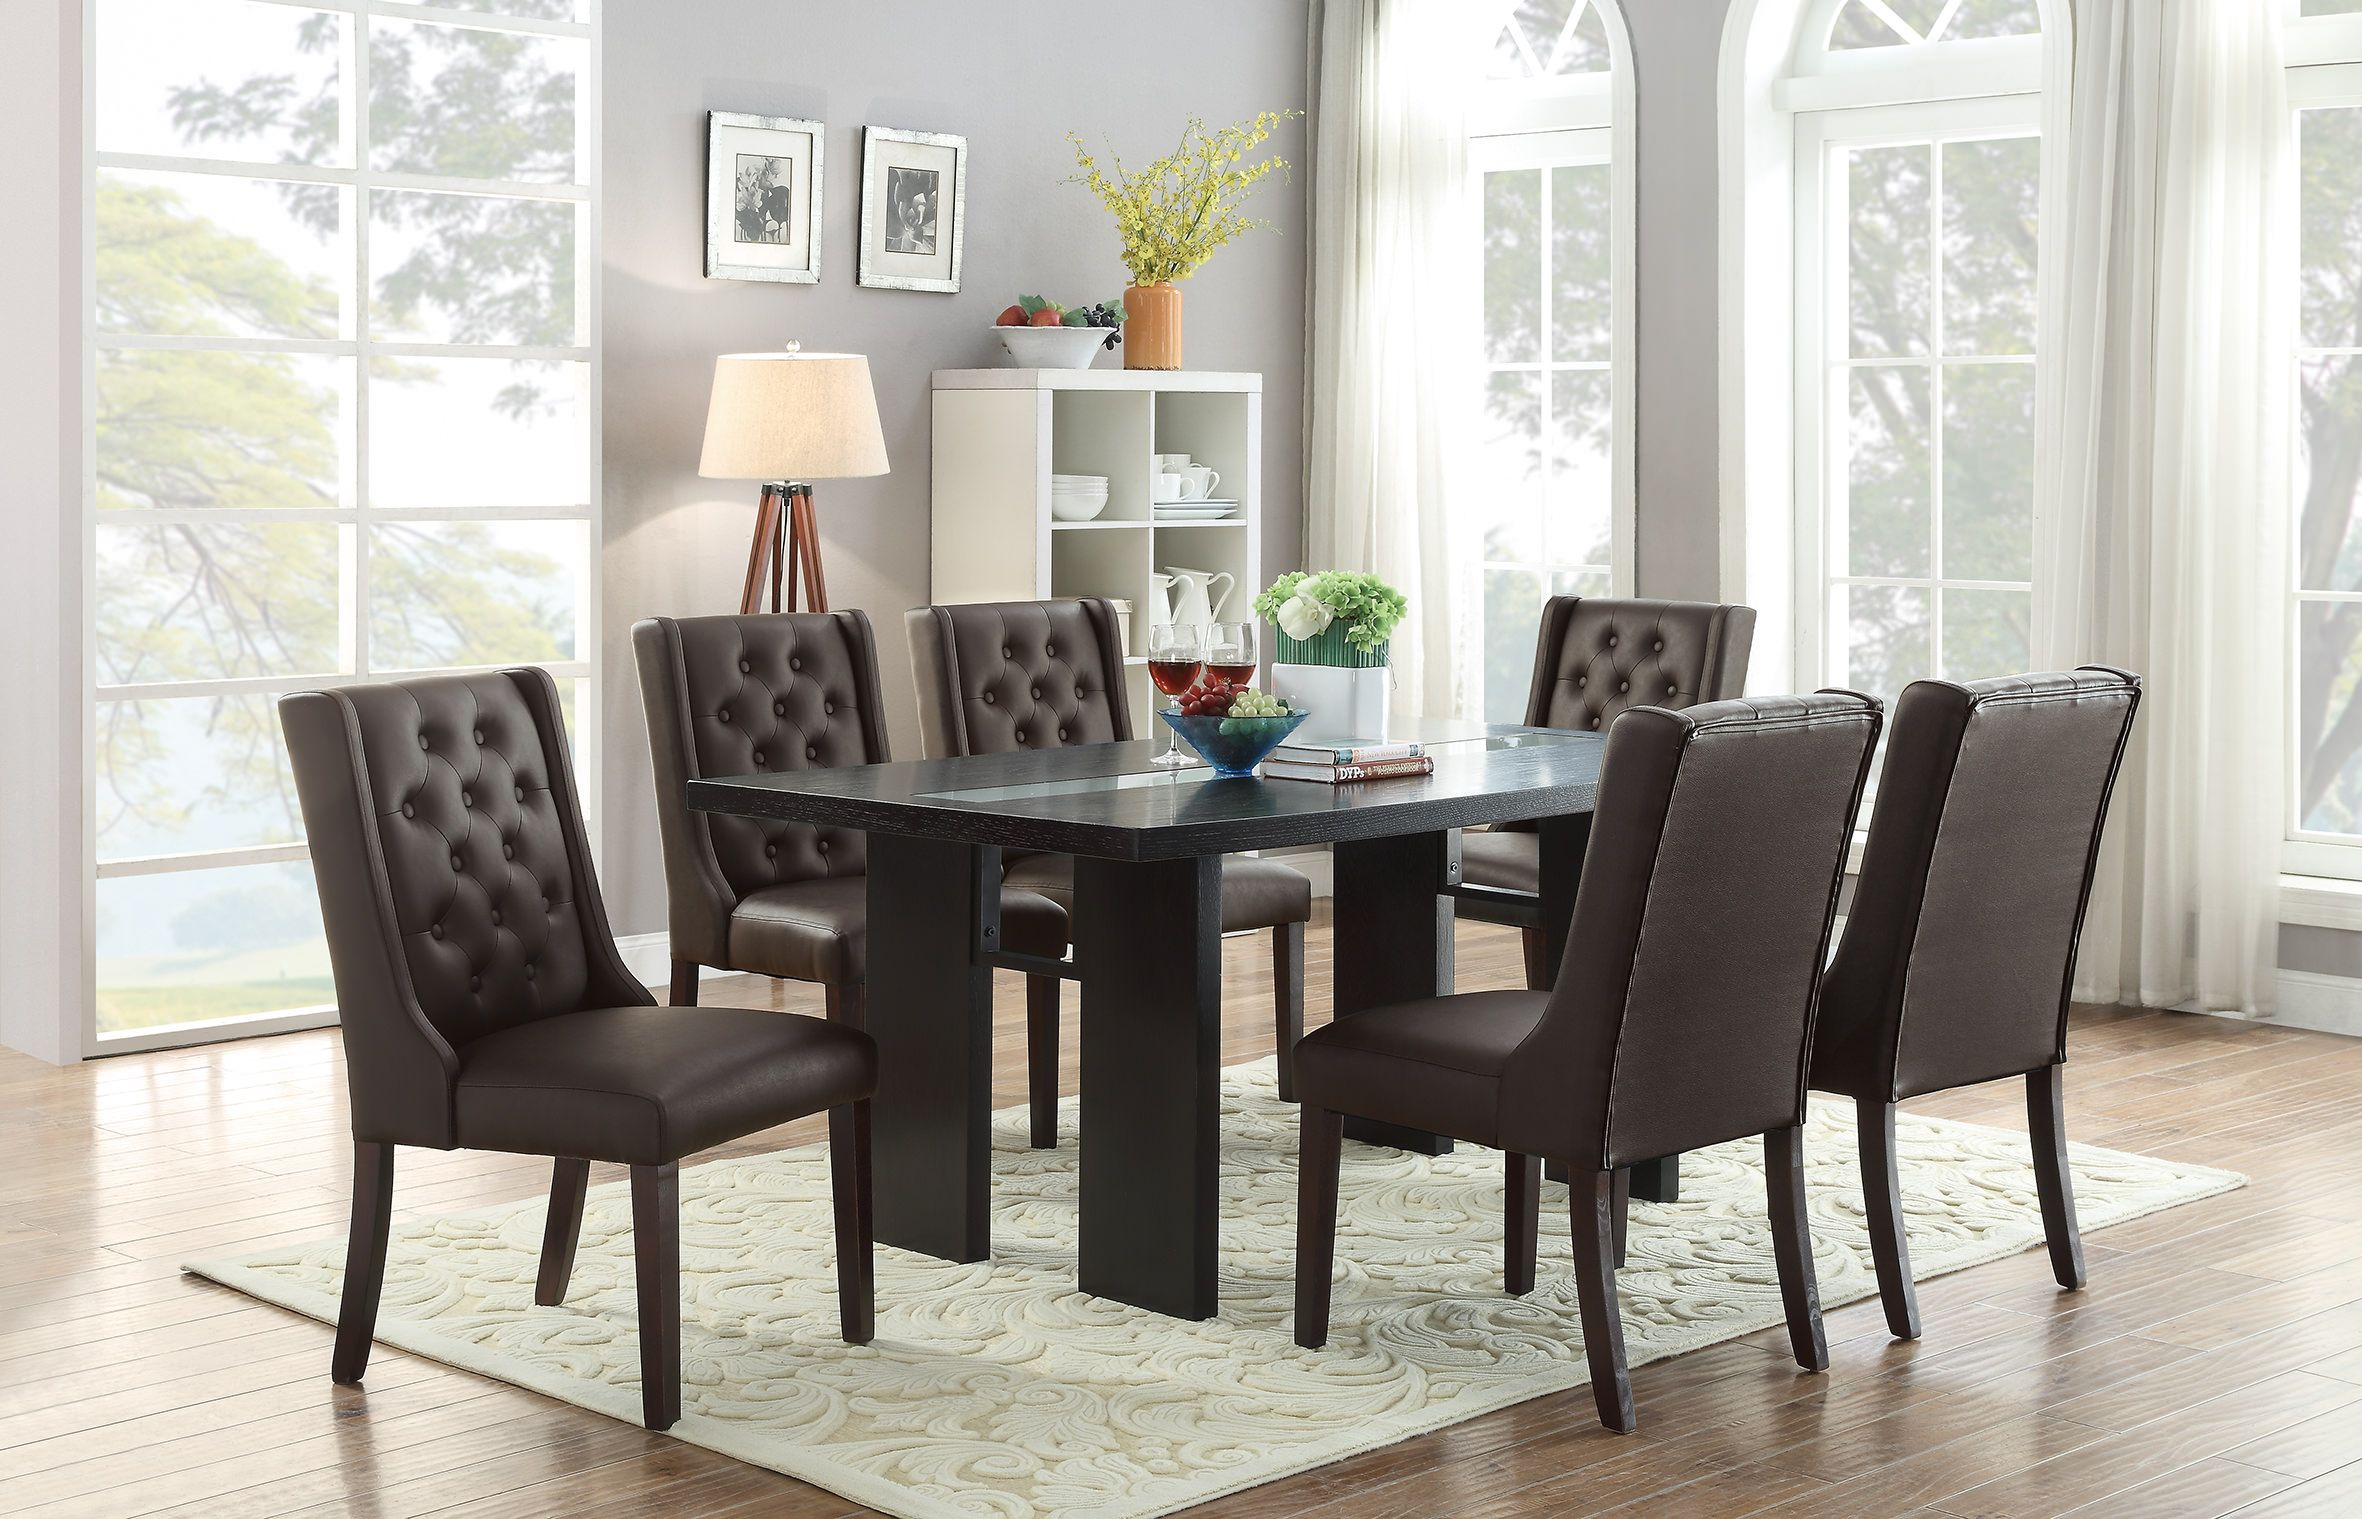 30c53694ab F1501 Espresso Dining Chair (Set of 2) by Poundex in 2019 ...